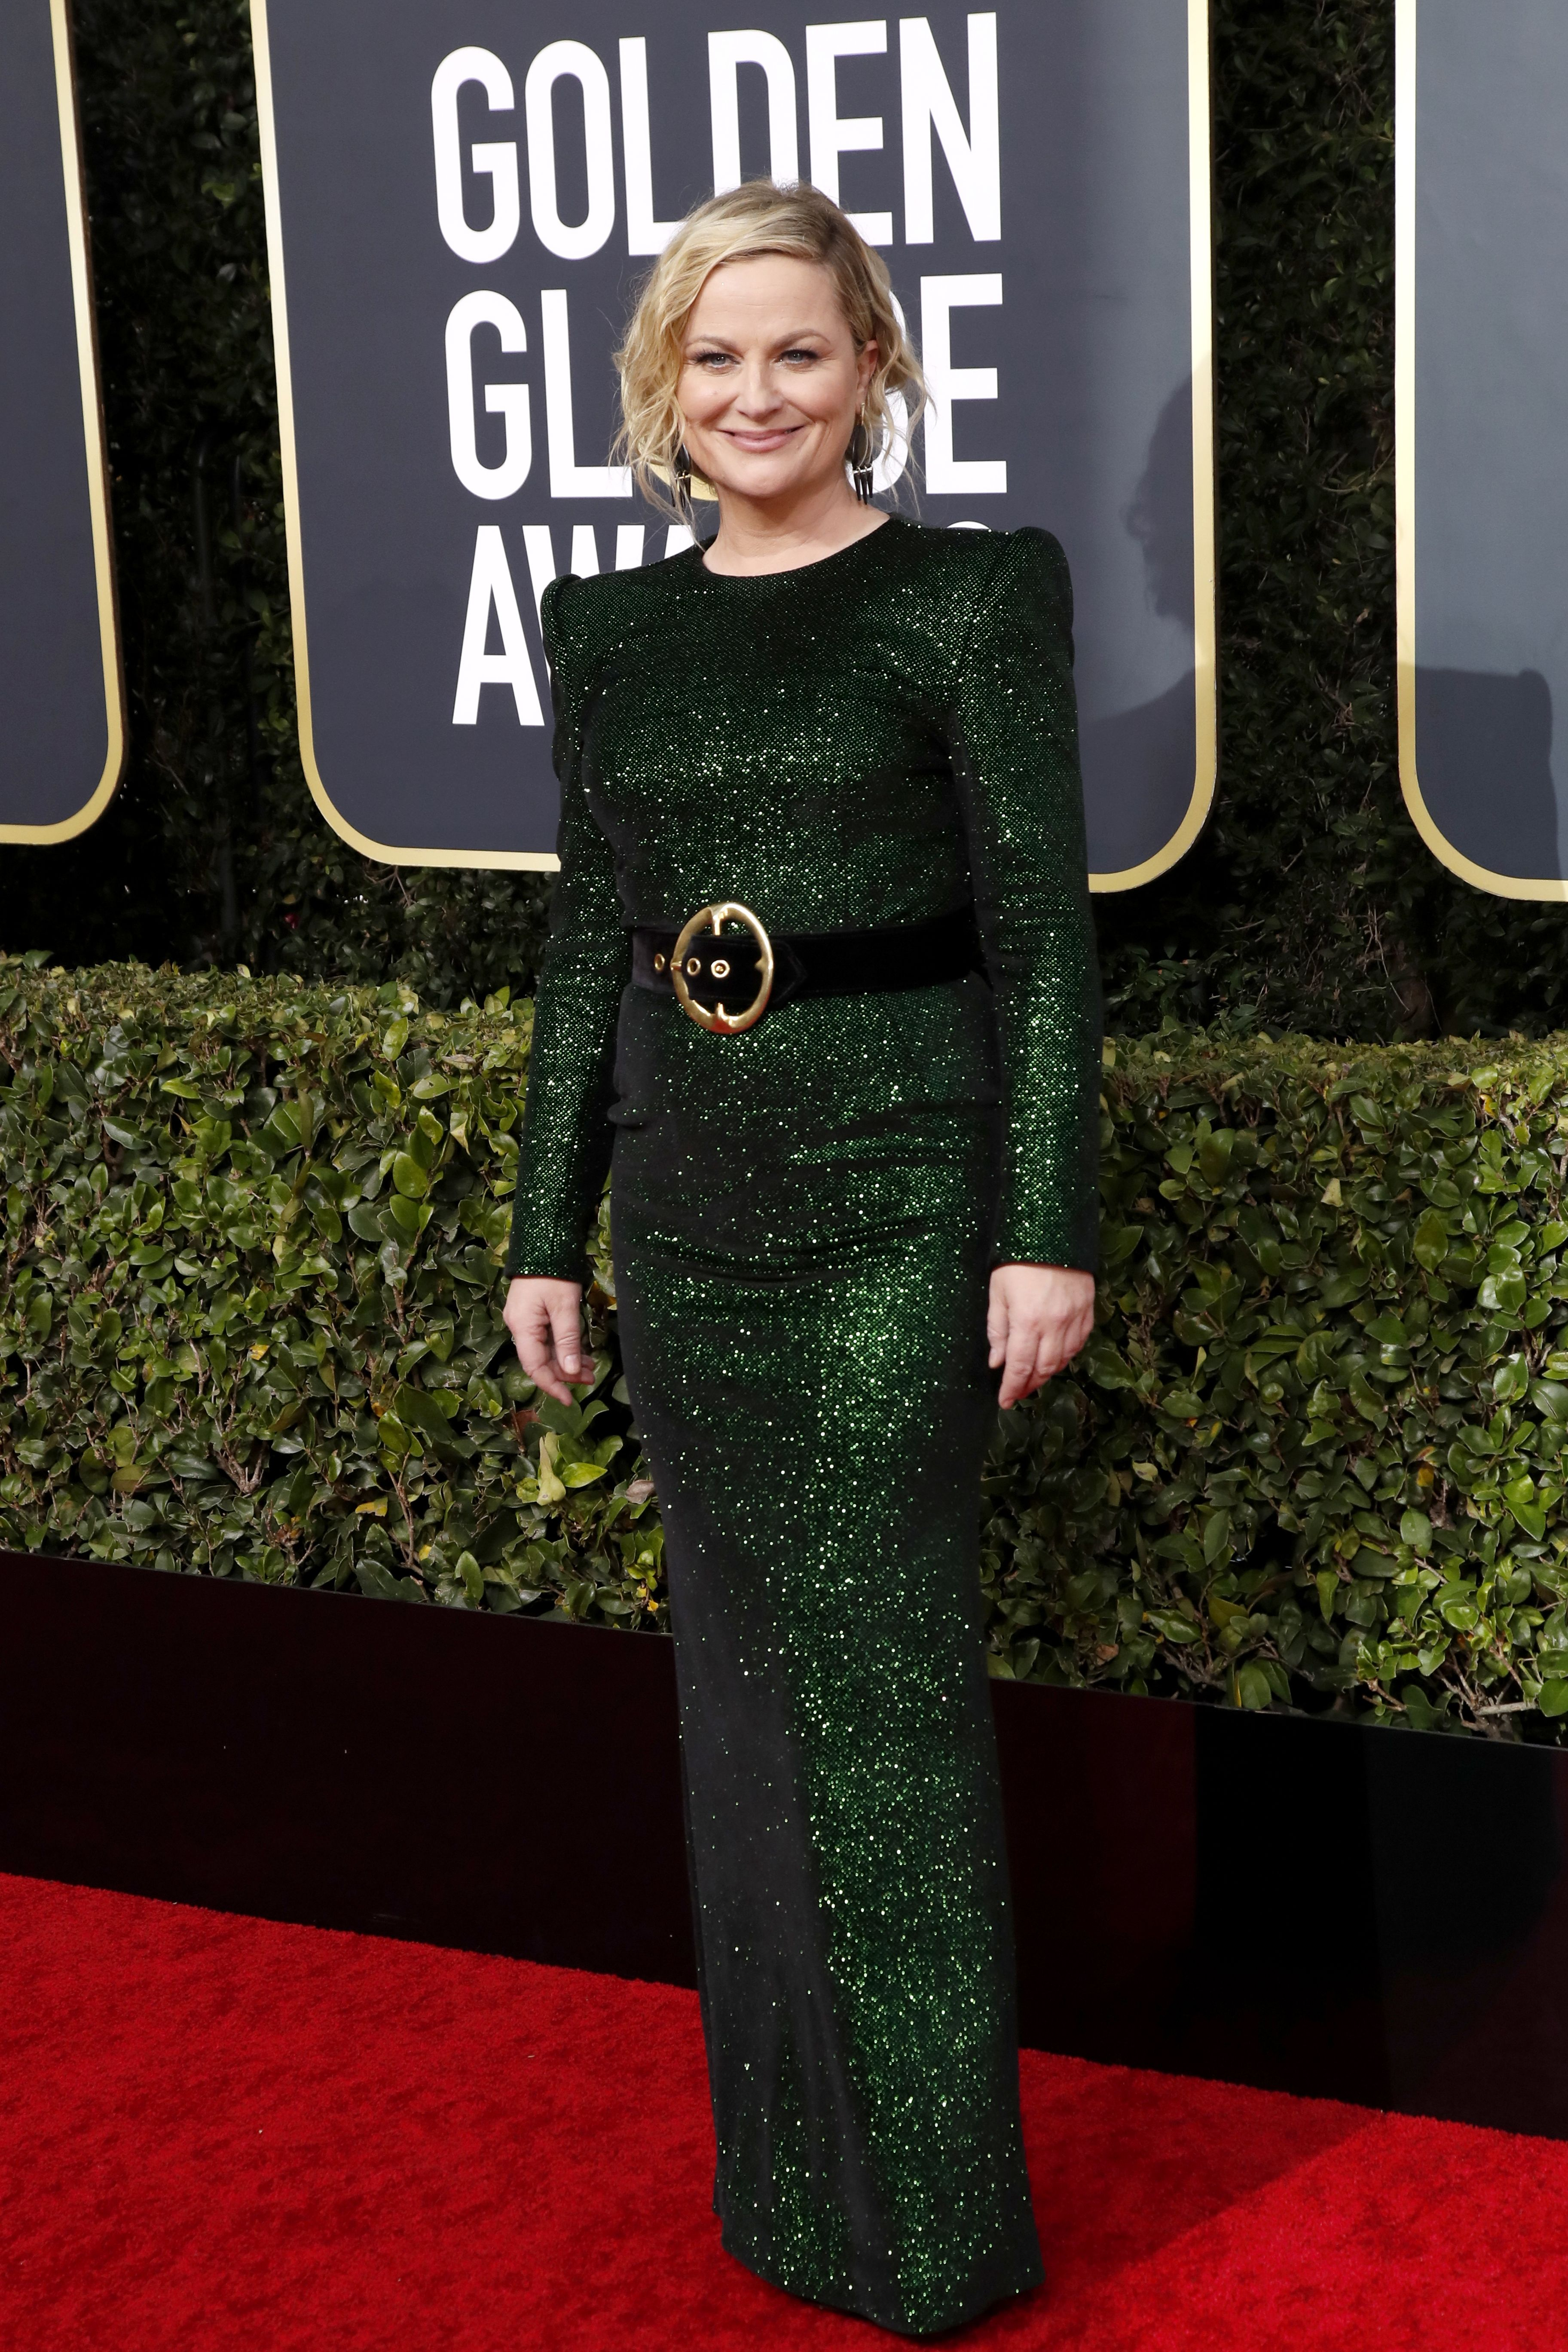 Amy Poehler arrives for the 77th annual Golden Globe Awards ceremony at the Beverly Hilton Hotel, in Beverly Hills, California, USA, 05 January 2020.Arrivals - 77th Golden Globe Awards, Beverly Hills, USA - 05 Jan 2020